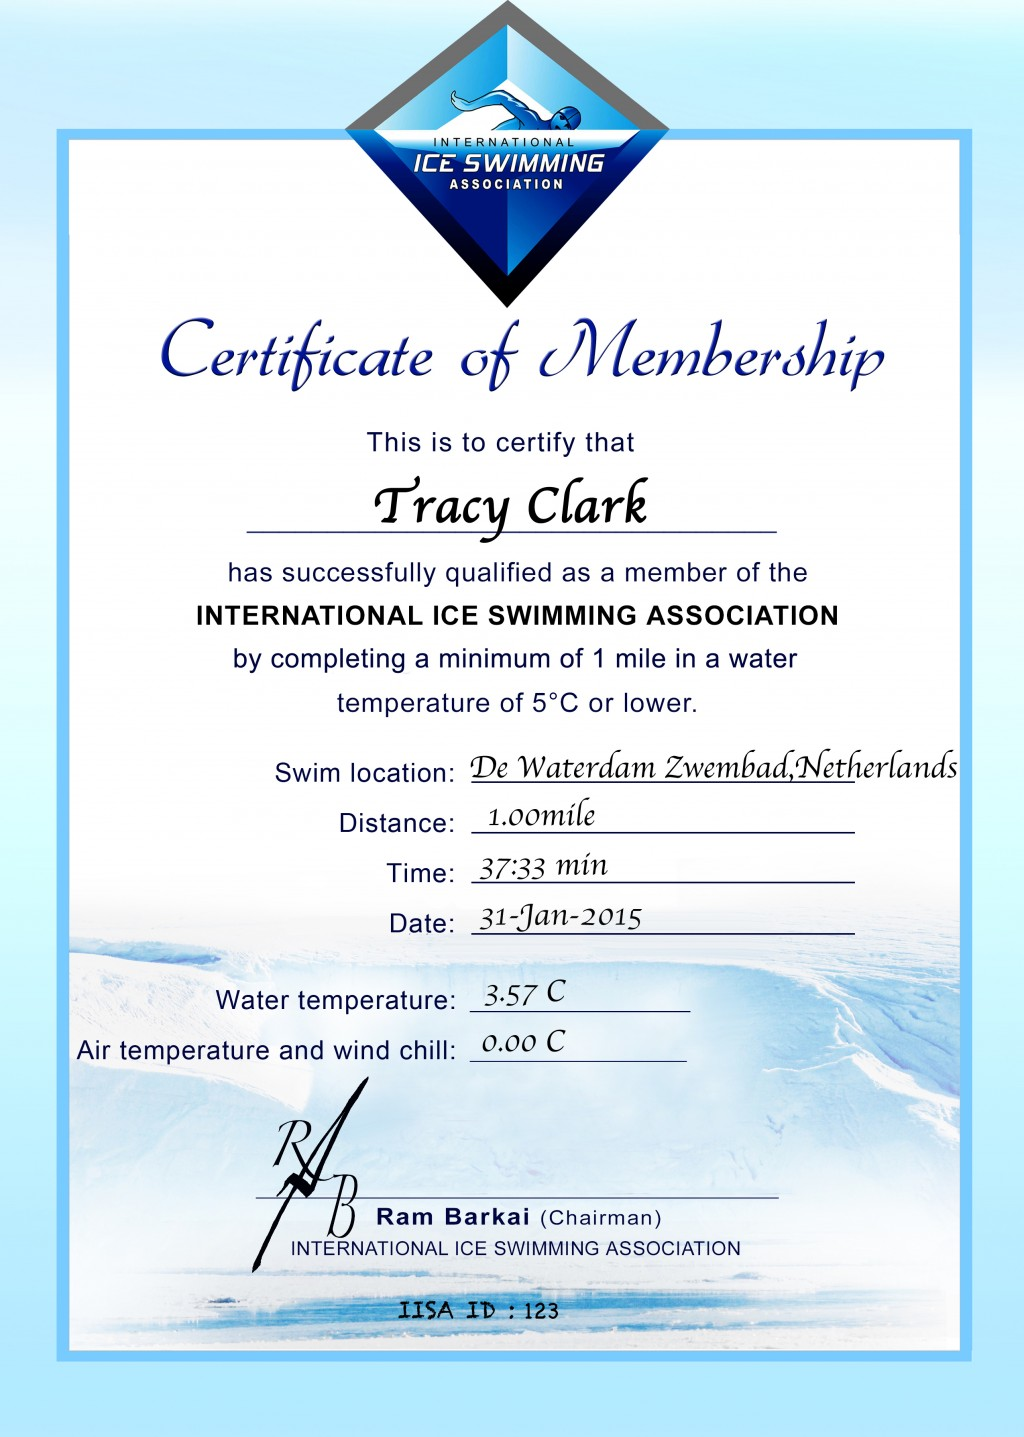 Swimming certificate template images templates example free download swimming certificate templates image collections templates swimming certificate templates choice image templates example swimming certificate templates xflitez Gallery